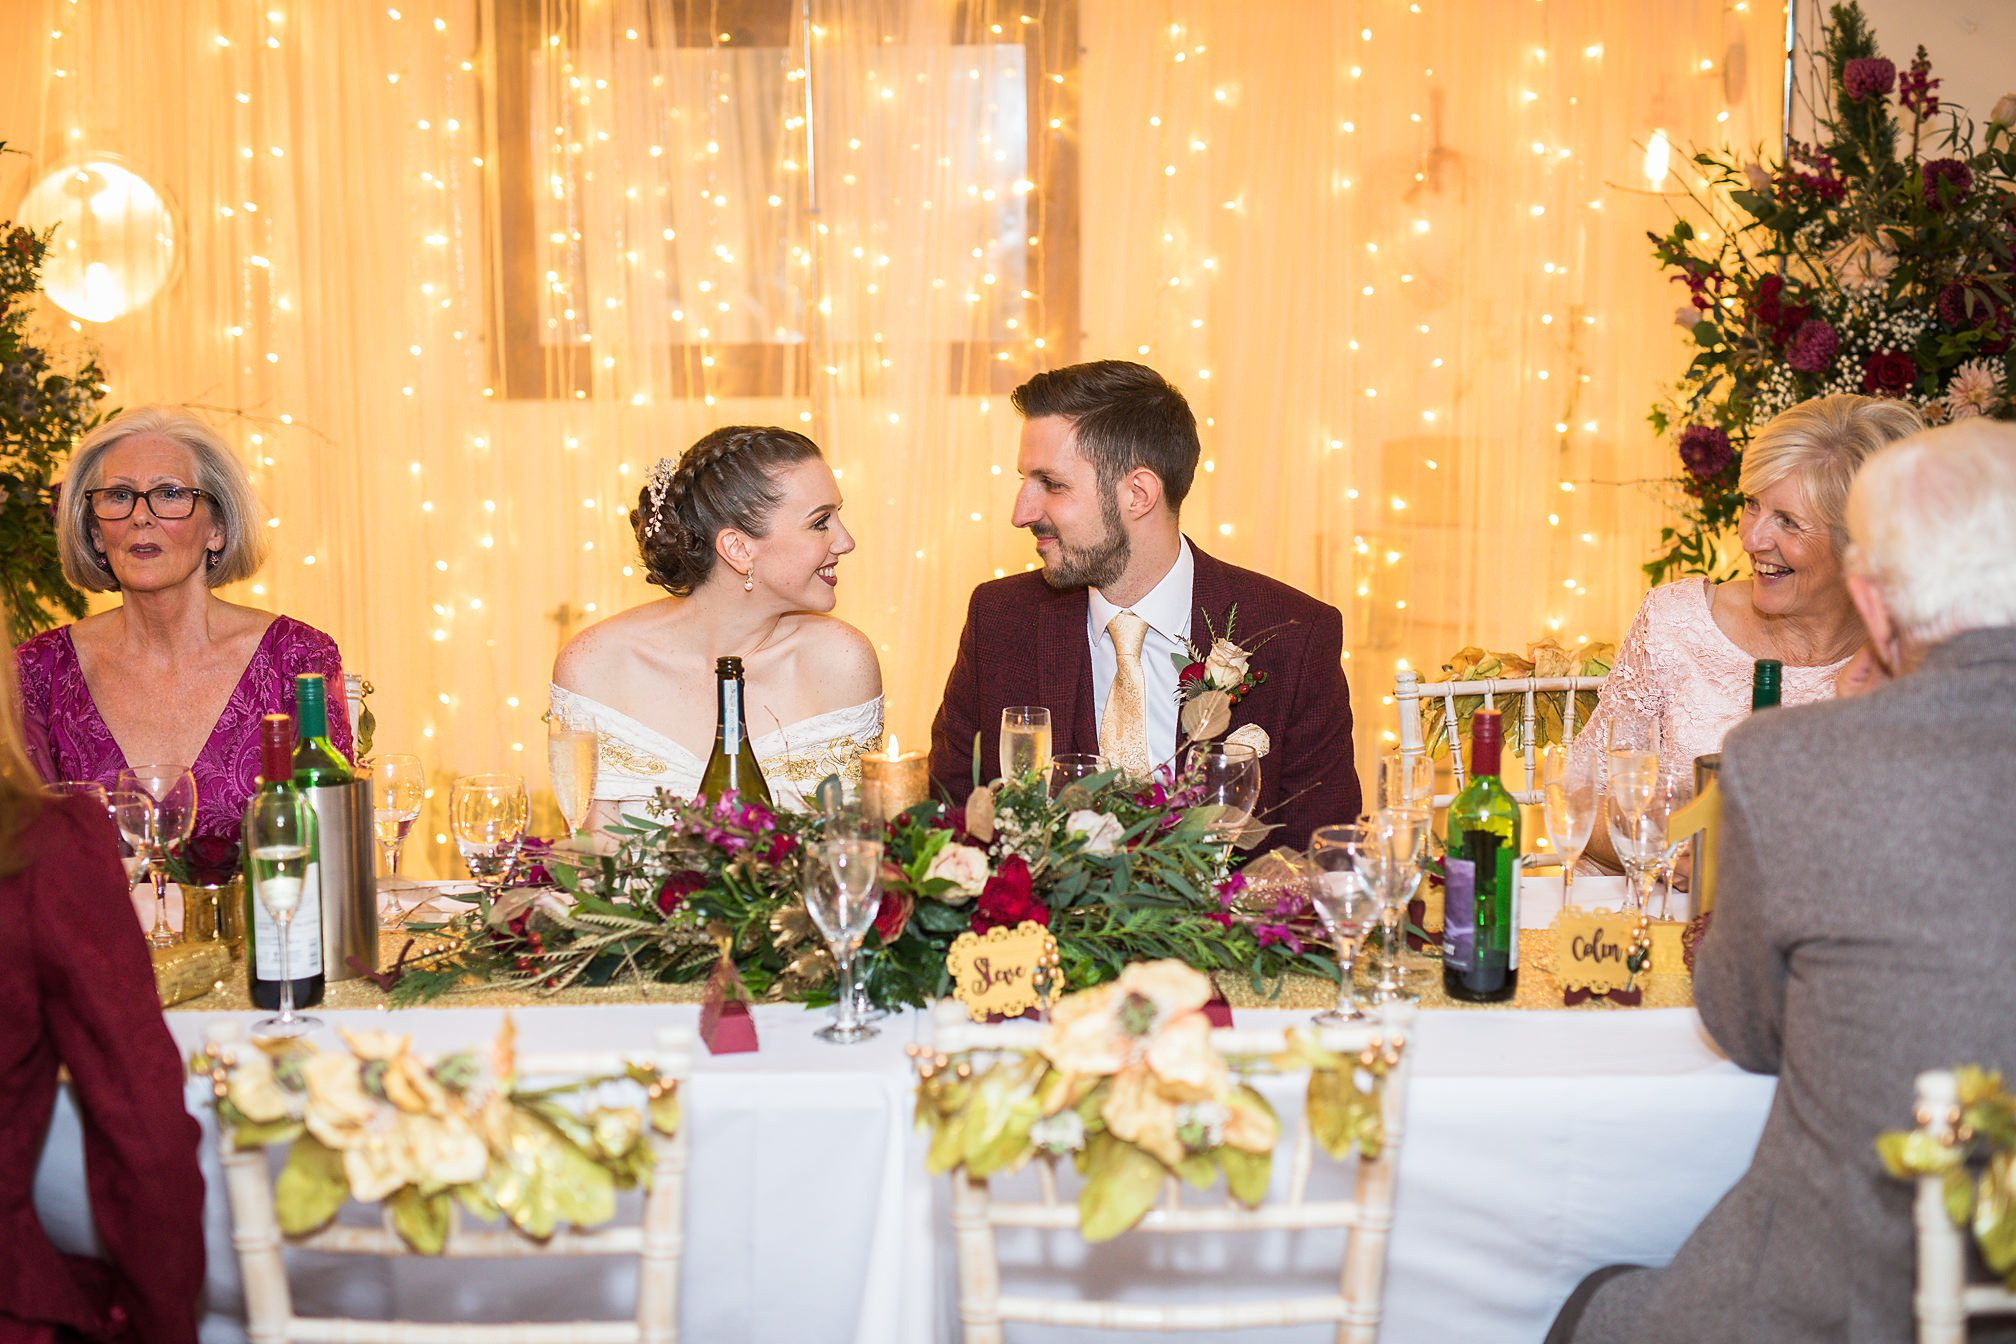 Bride and groom sat at their wedding table look adoringly into each others eyes surrounded by seated guests